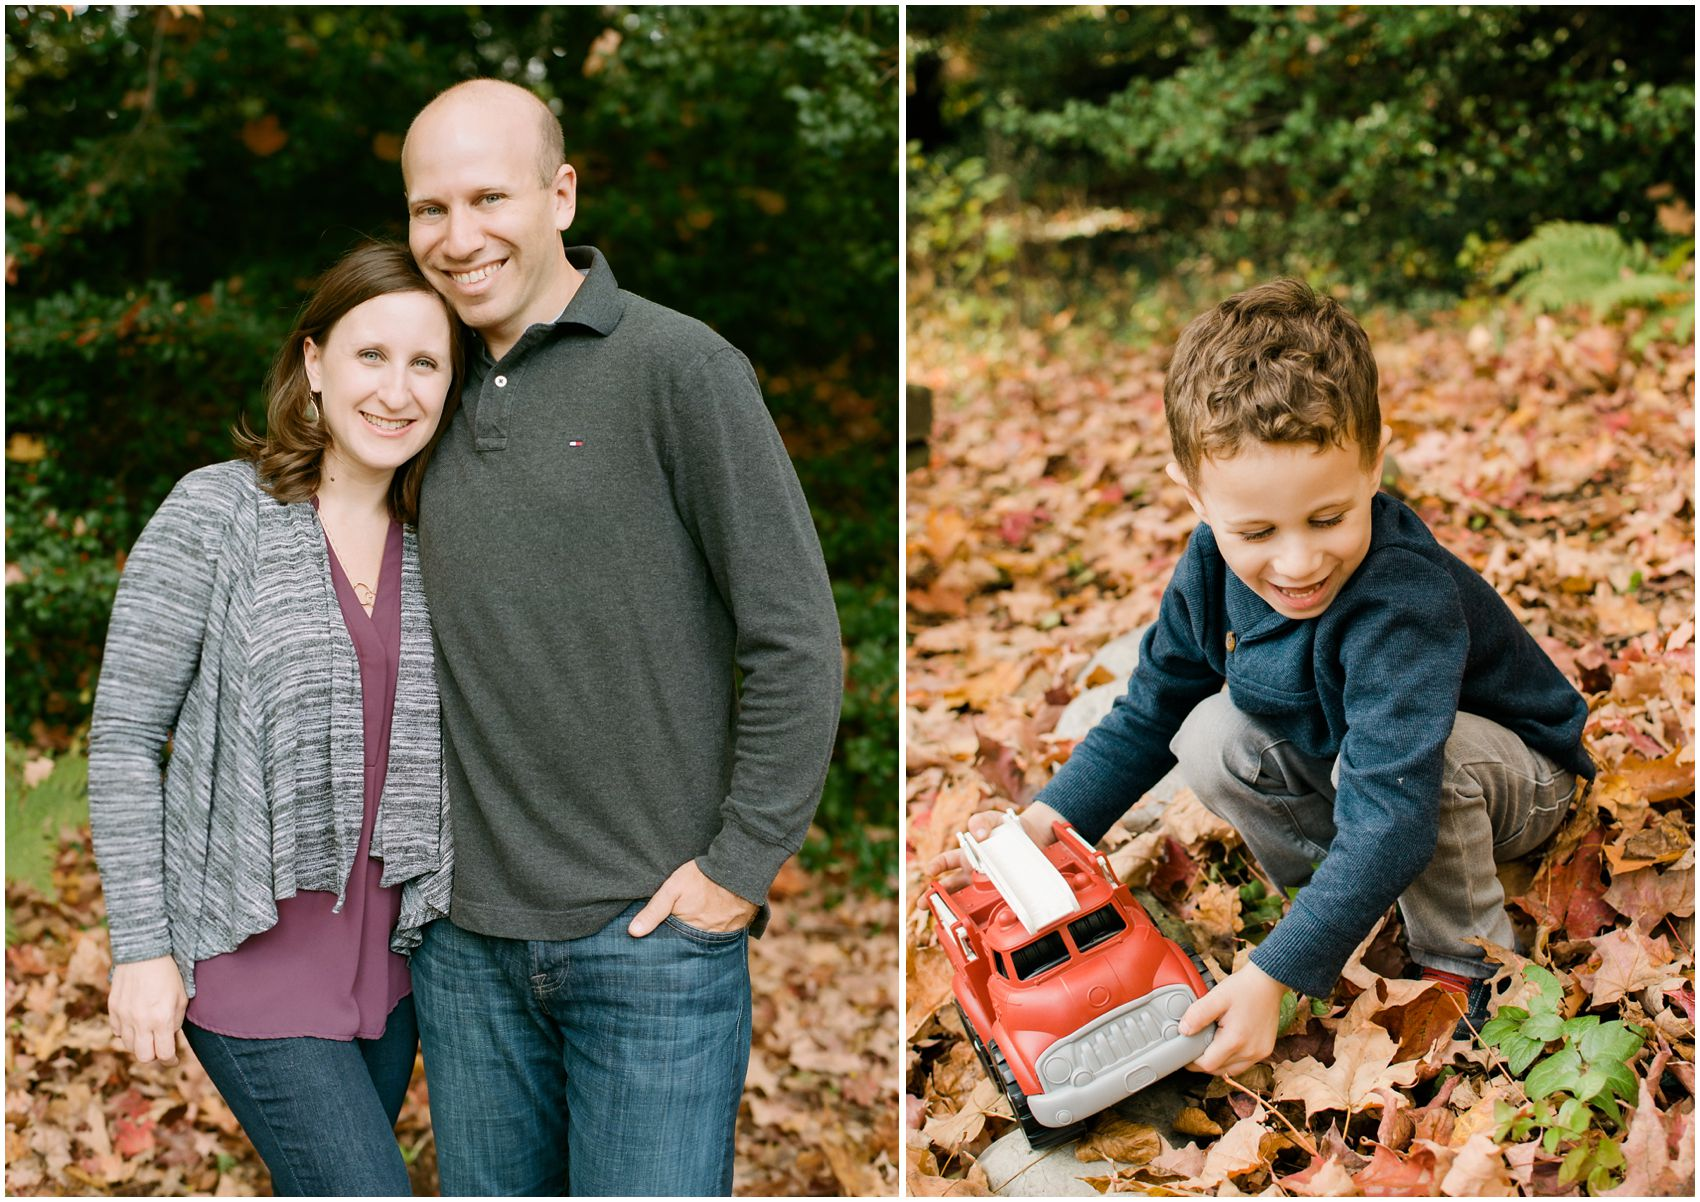 mom and dad pose for a portrait wearing maroon, grey and blue colors wile the little boy plays with firetruck